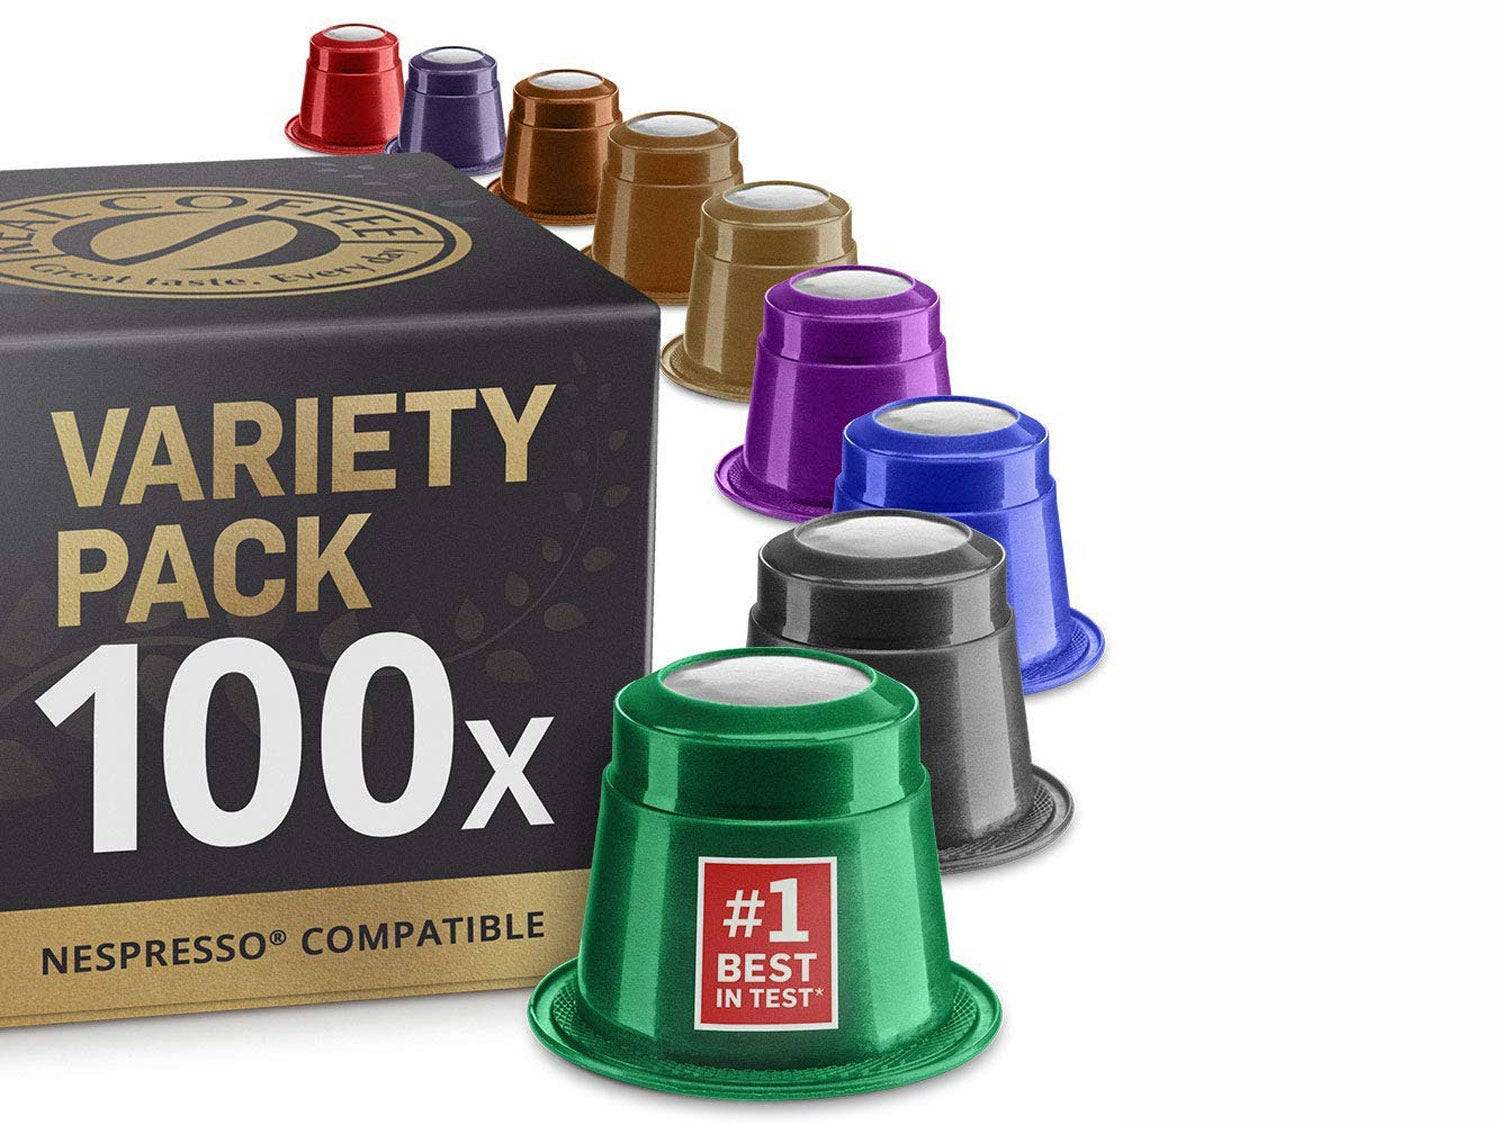 Real Coffee Mixed Variety Pack: 100 Nespresso Compatible Capsules. Organic/Fairtrade Nespresso Capsules. 9 Different Varieties